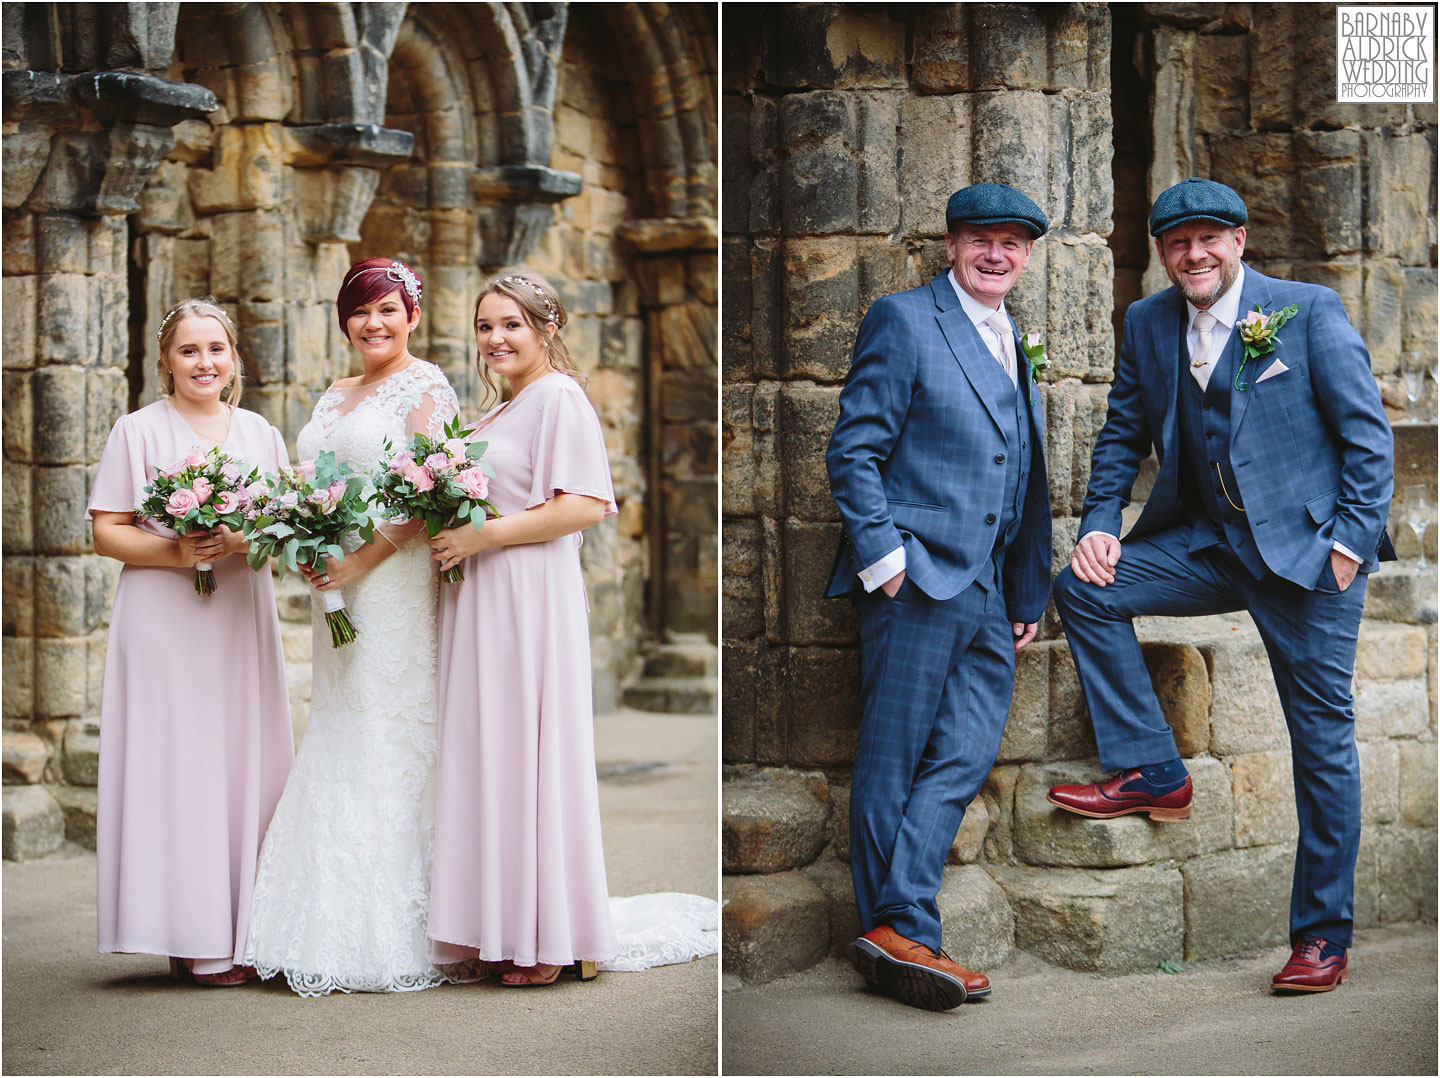 Wedding group shots at Kirkstall Abbey Leeds, Kirkstall Abbey Wedding photography